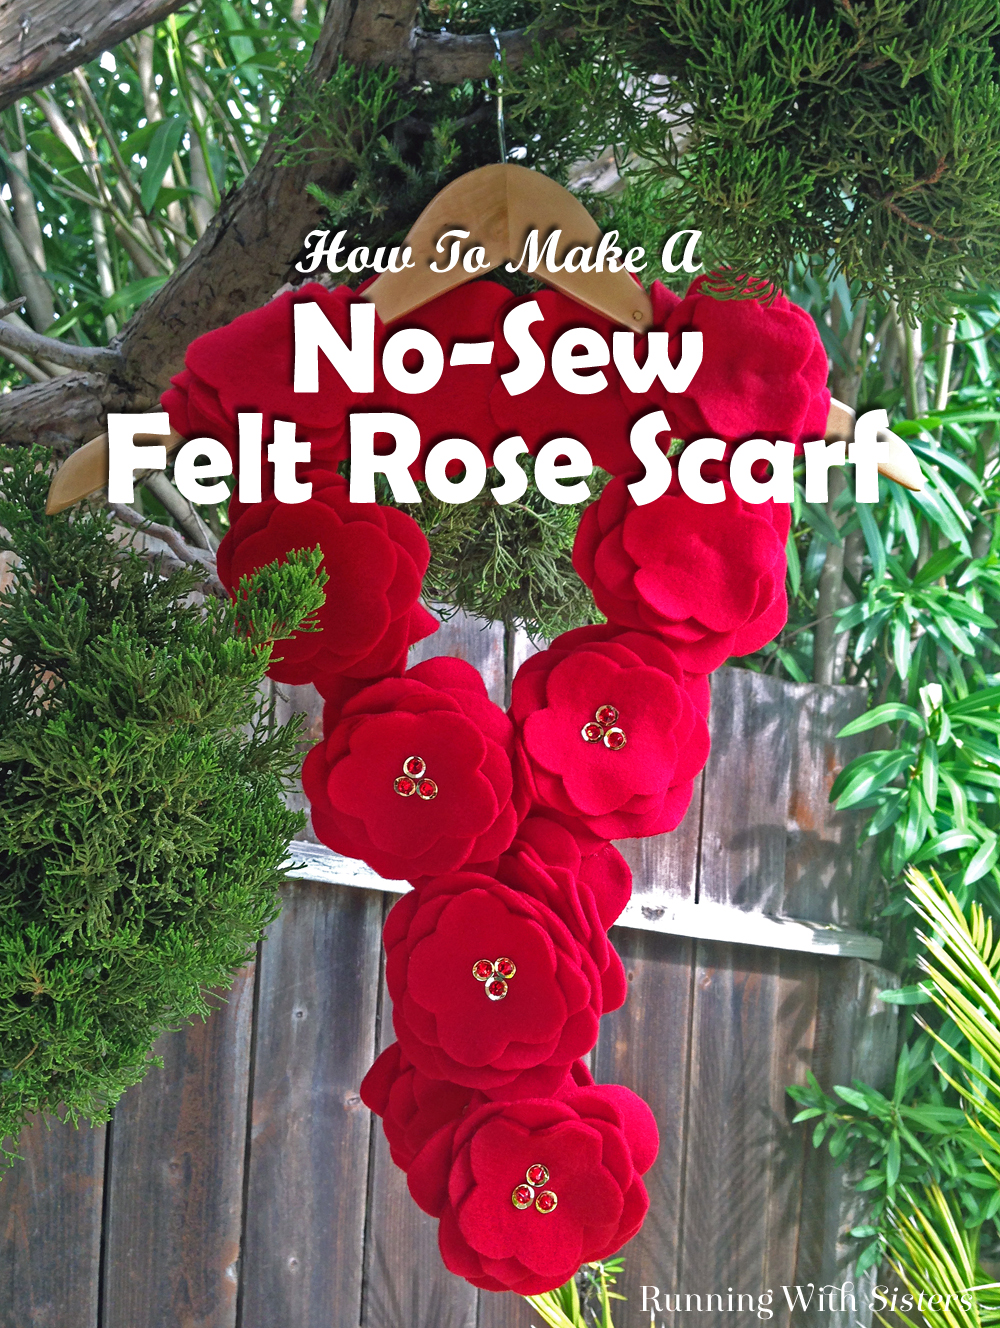 Make a no-sew felt rose scarf using scissors and glue. This luxurious scarf is super easy to make!